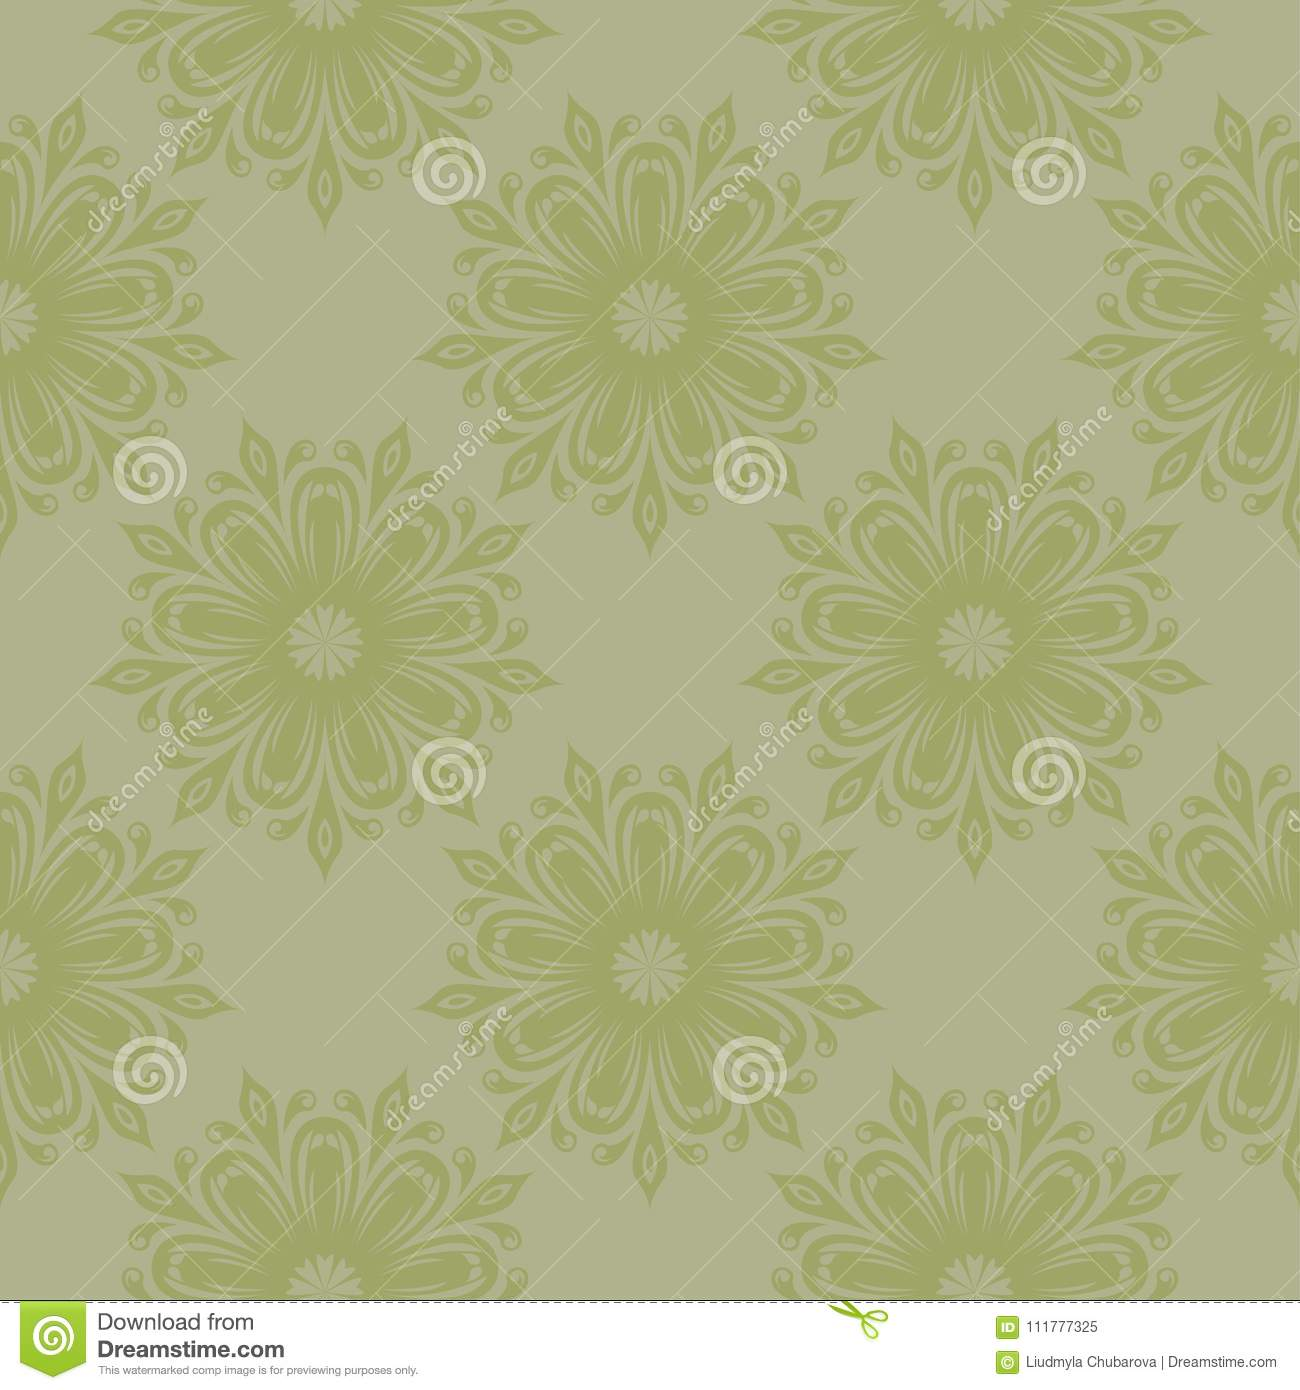 Olive green floral seamless pattern. Ornamental background